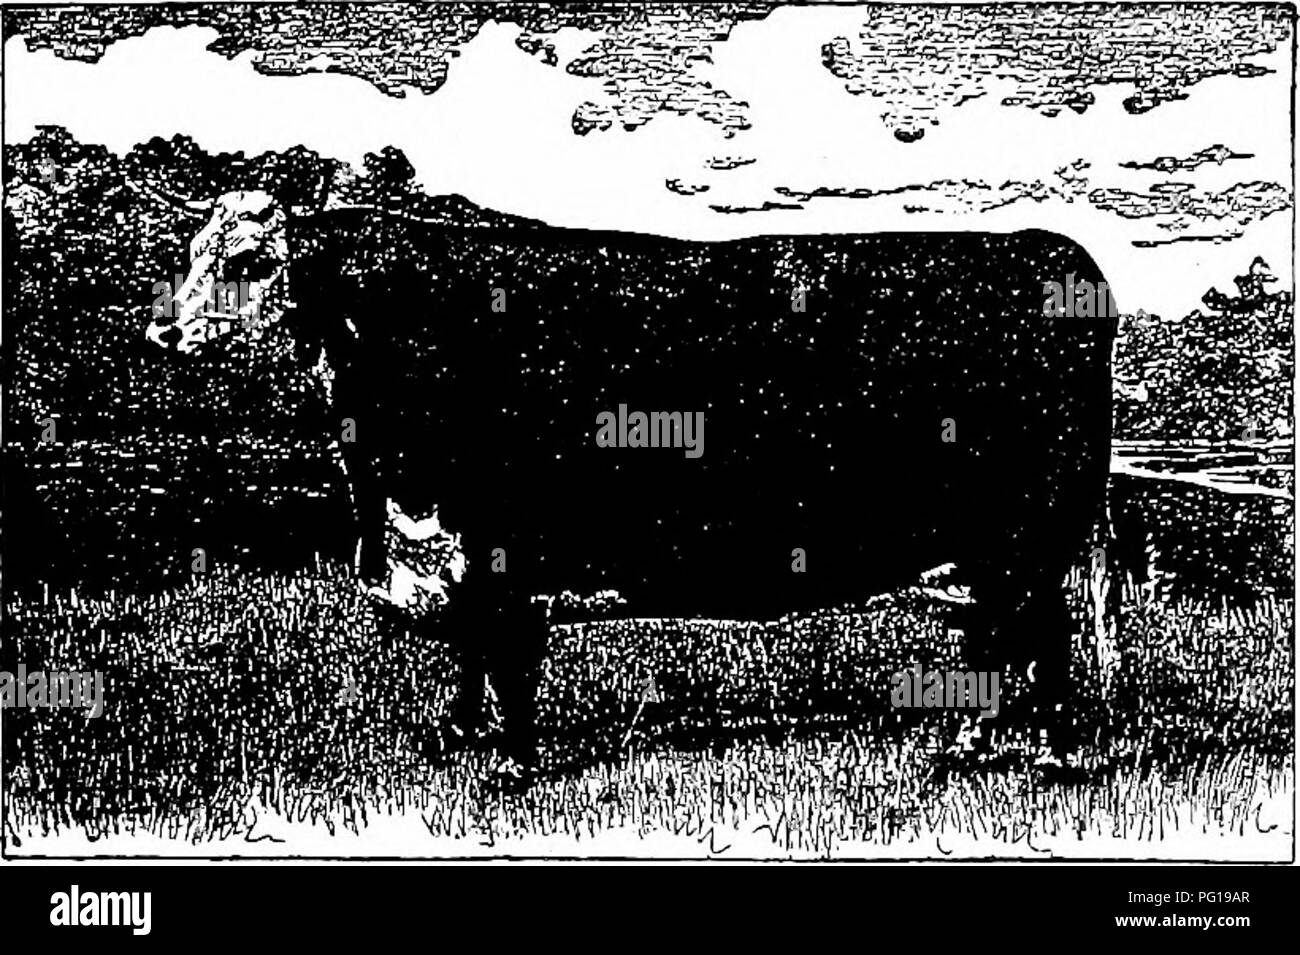 """. History of Hereford cattle : proven conclusively the oldest of improved breeds . Hereford cattle. HISTORY OF HEREFORD CATTLE 325 the best Hereford at Birmingham (fat show), 1879; first prize and champion prize for the best Hereford at the Smithfield club (fat show), London, 1879. Total of her winnings, $3,250. FIVE HUNDRED DOLLARS BDTCHEE's PEIZE. (aN OI^EN LETTER.) No. 3 Board of Trade Bldg., Chicago, HI., Sept. 25. ;.^;: """"To Whom it May Concern: Some of the ;i%eeders of Hereford cattle have subscribed :'$500, which they have directed me to deposit jwith the treasurer of the Chicago Fa - Stock Image"""